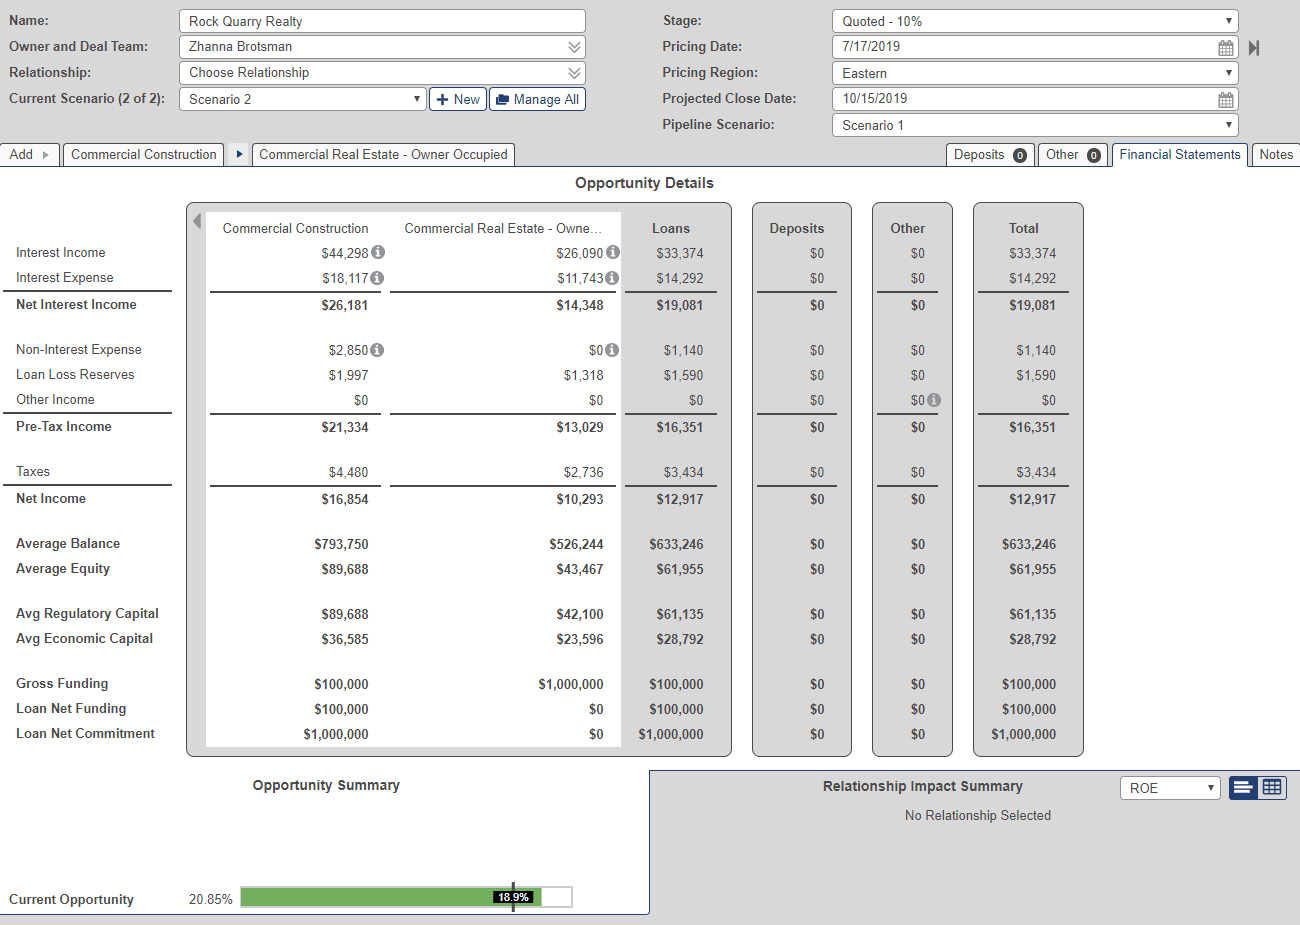 The financial statement for a conversion loan is shown here